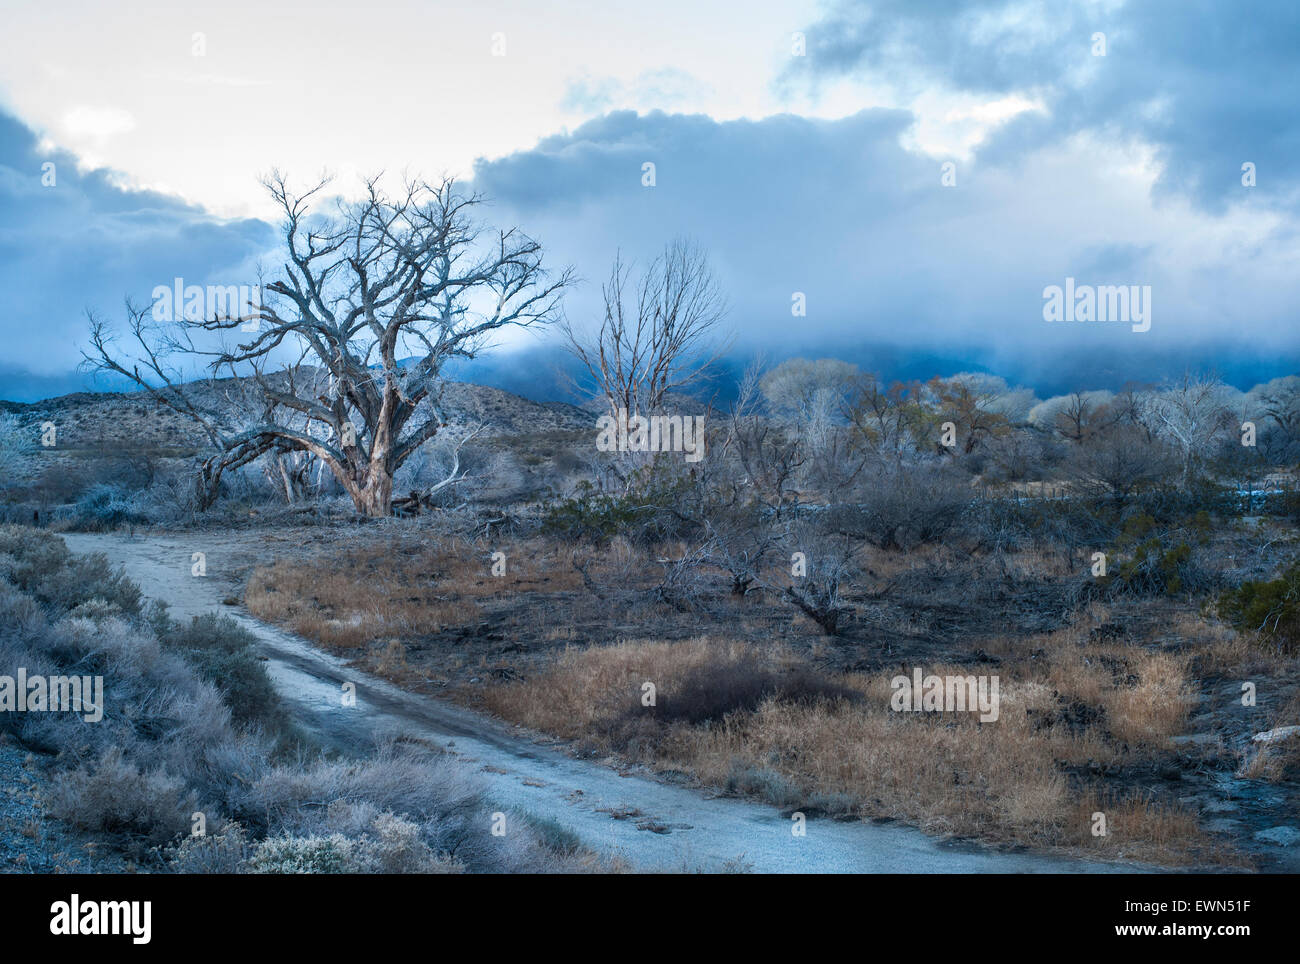 Lone tree in the wild open landscape of southern California, with a storm approaching behind. - Stock Image